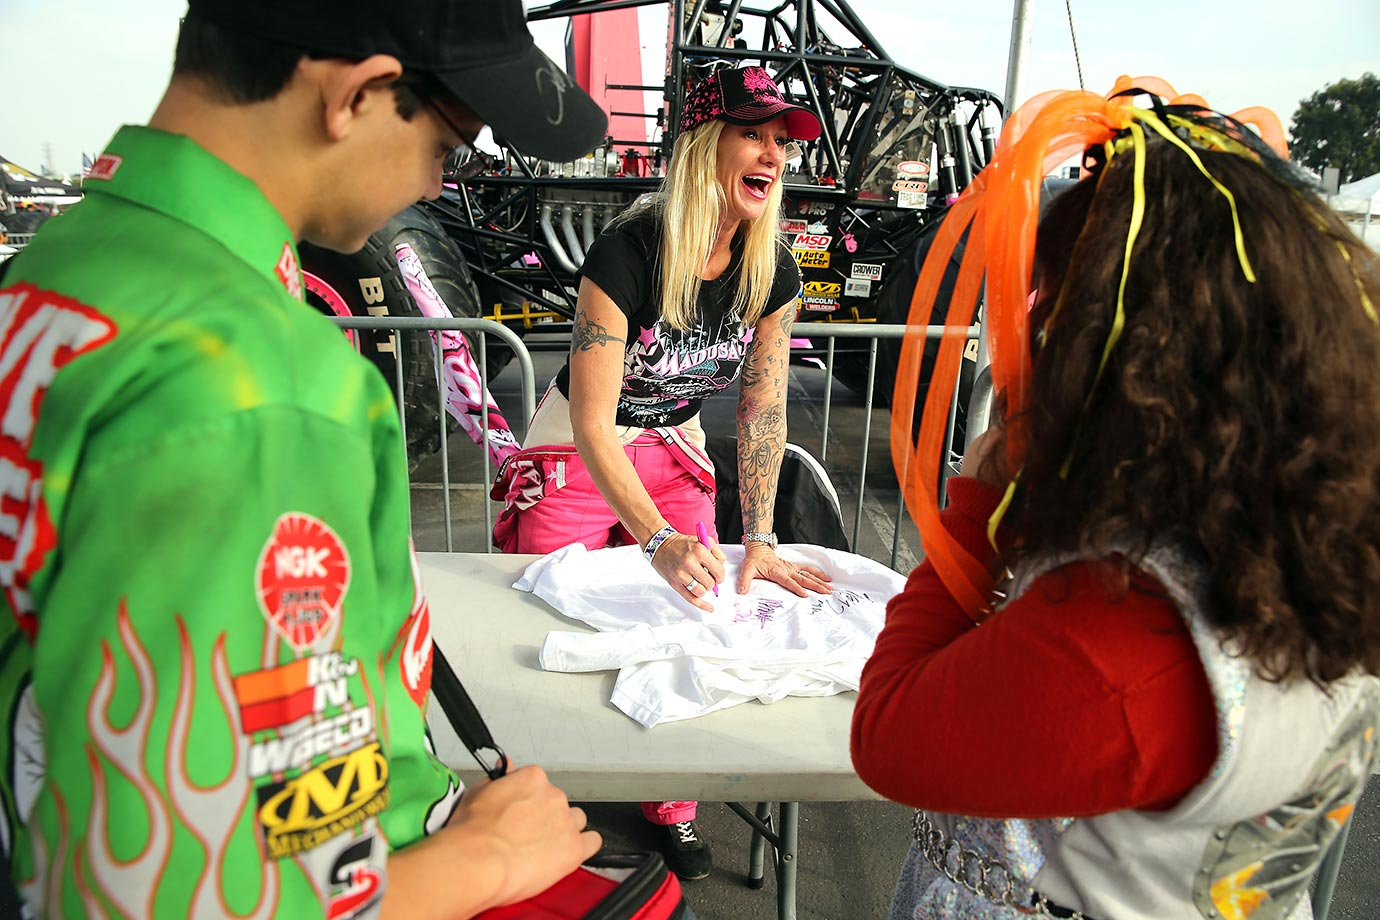 Madusa and Monster Truck driver Debra Miceli sign autographs for fans. Before becoming a Monster Jam icon, Madusa was one of the most celebrated professional wrestlers in sports.